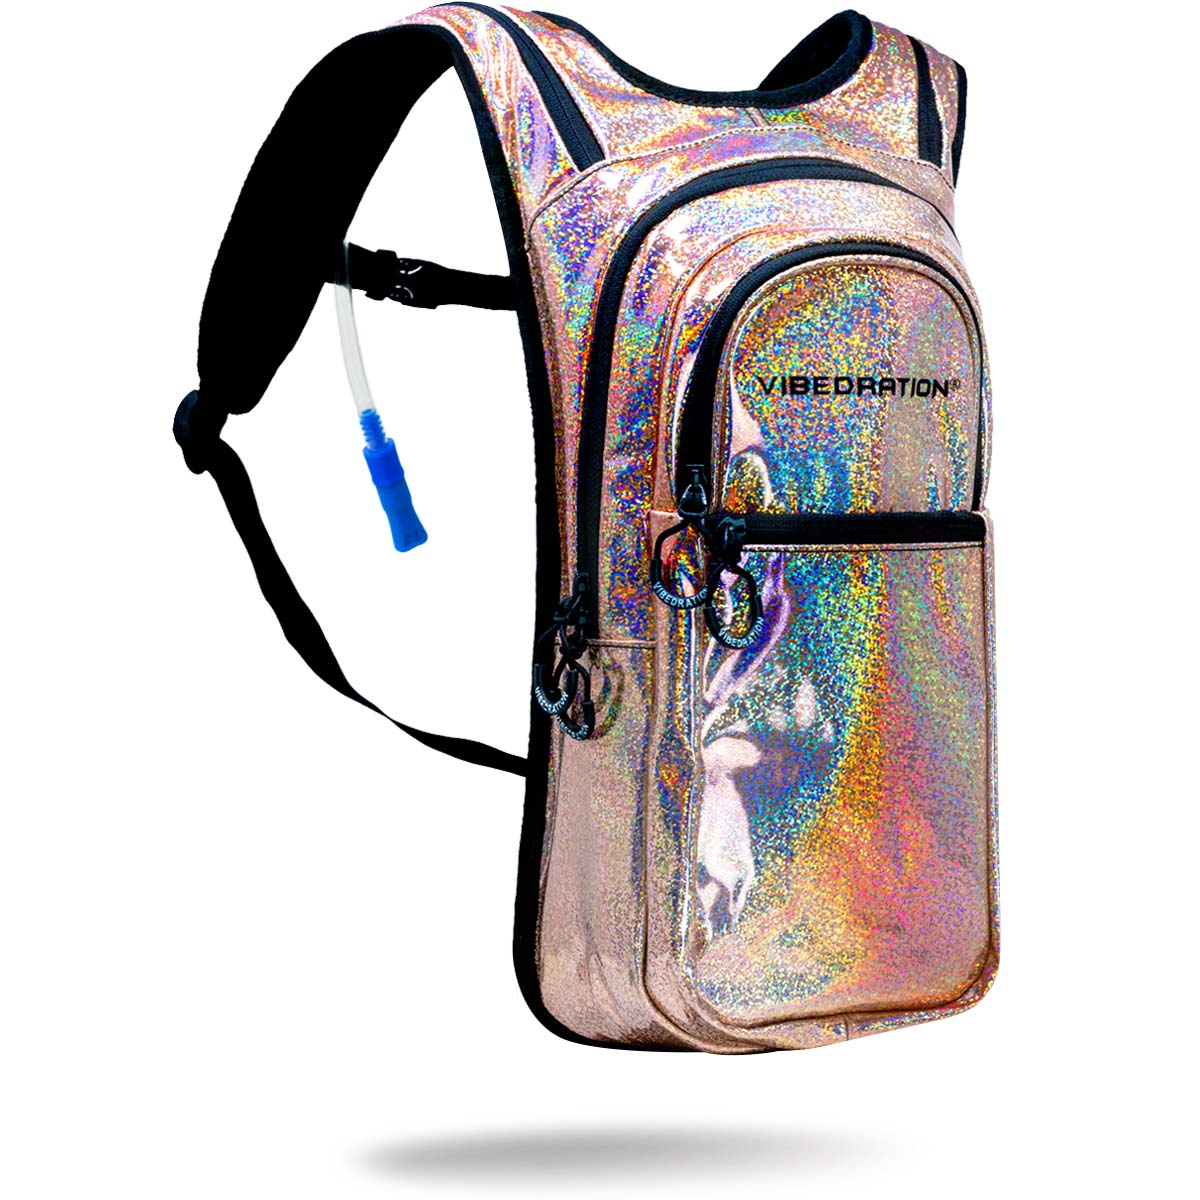 Light gold holographic hydration pack with rainbow sparkles